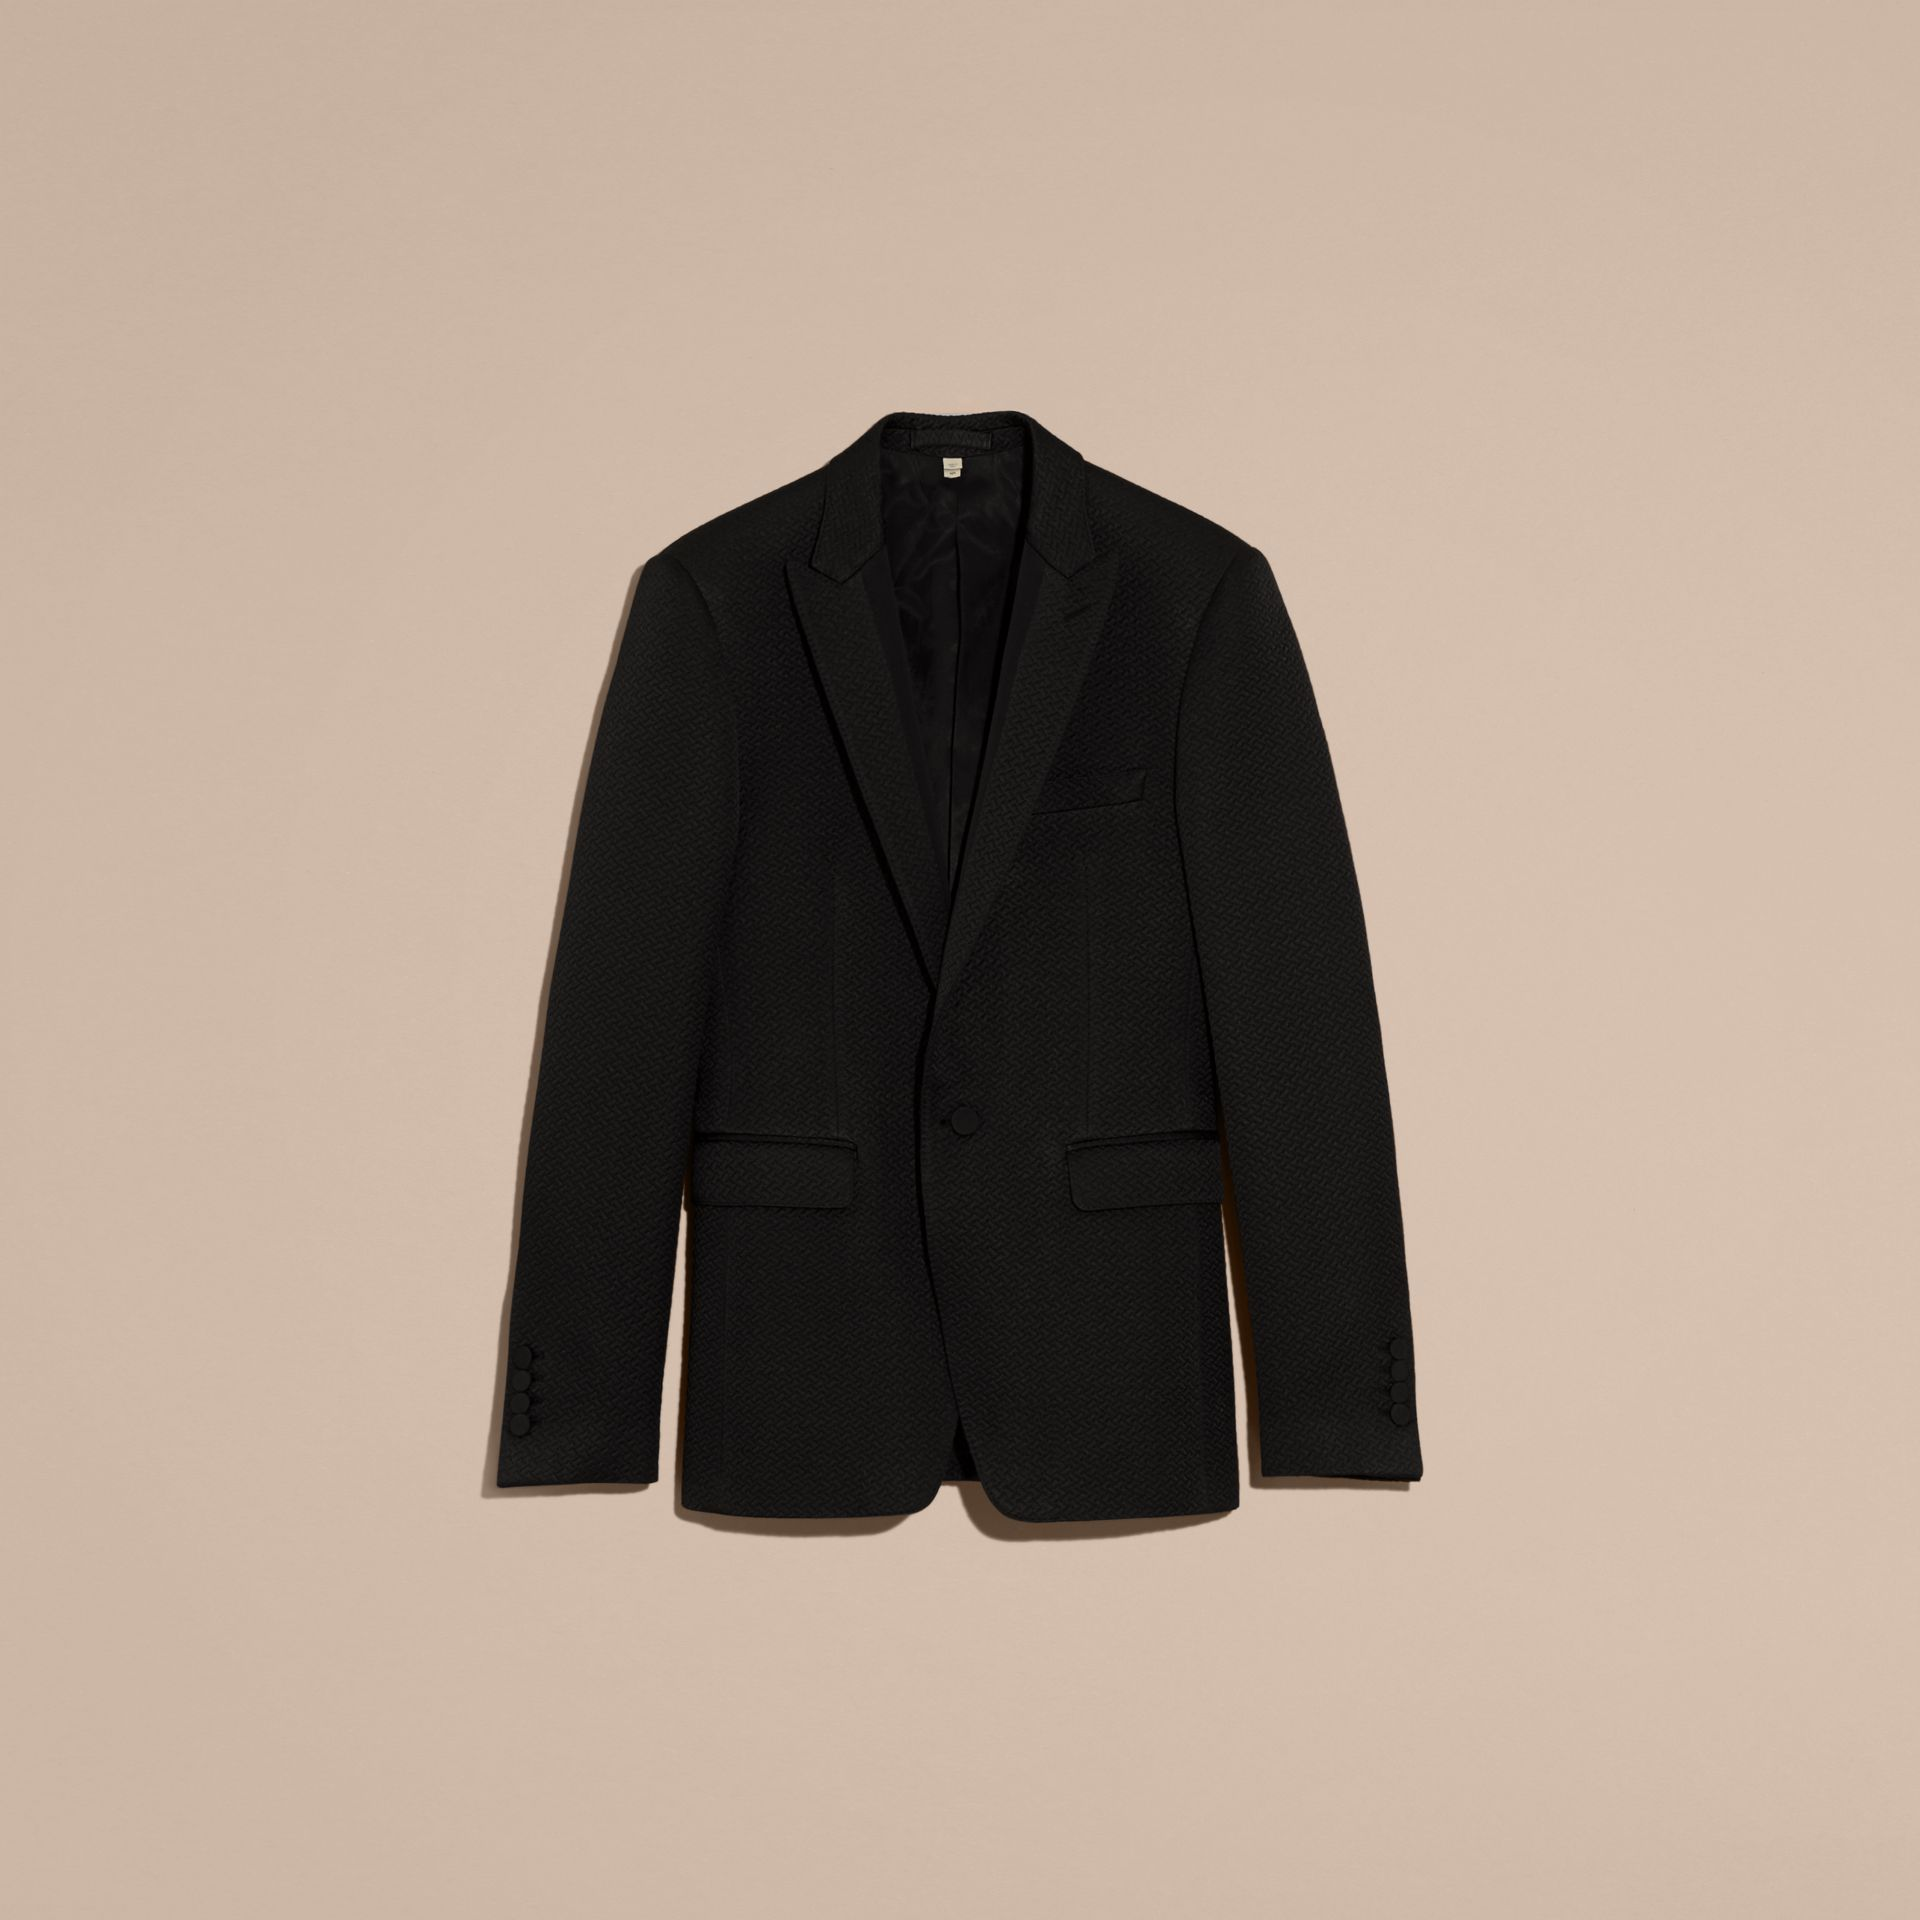 Black Slim Fit Textured Cotton Silk Blend Tailored Jacket - gallery image 4